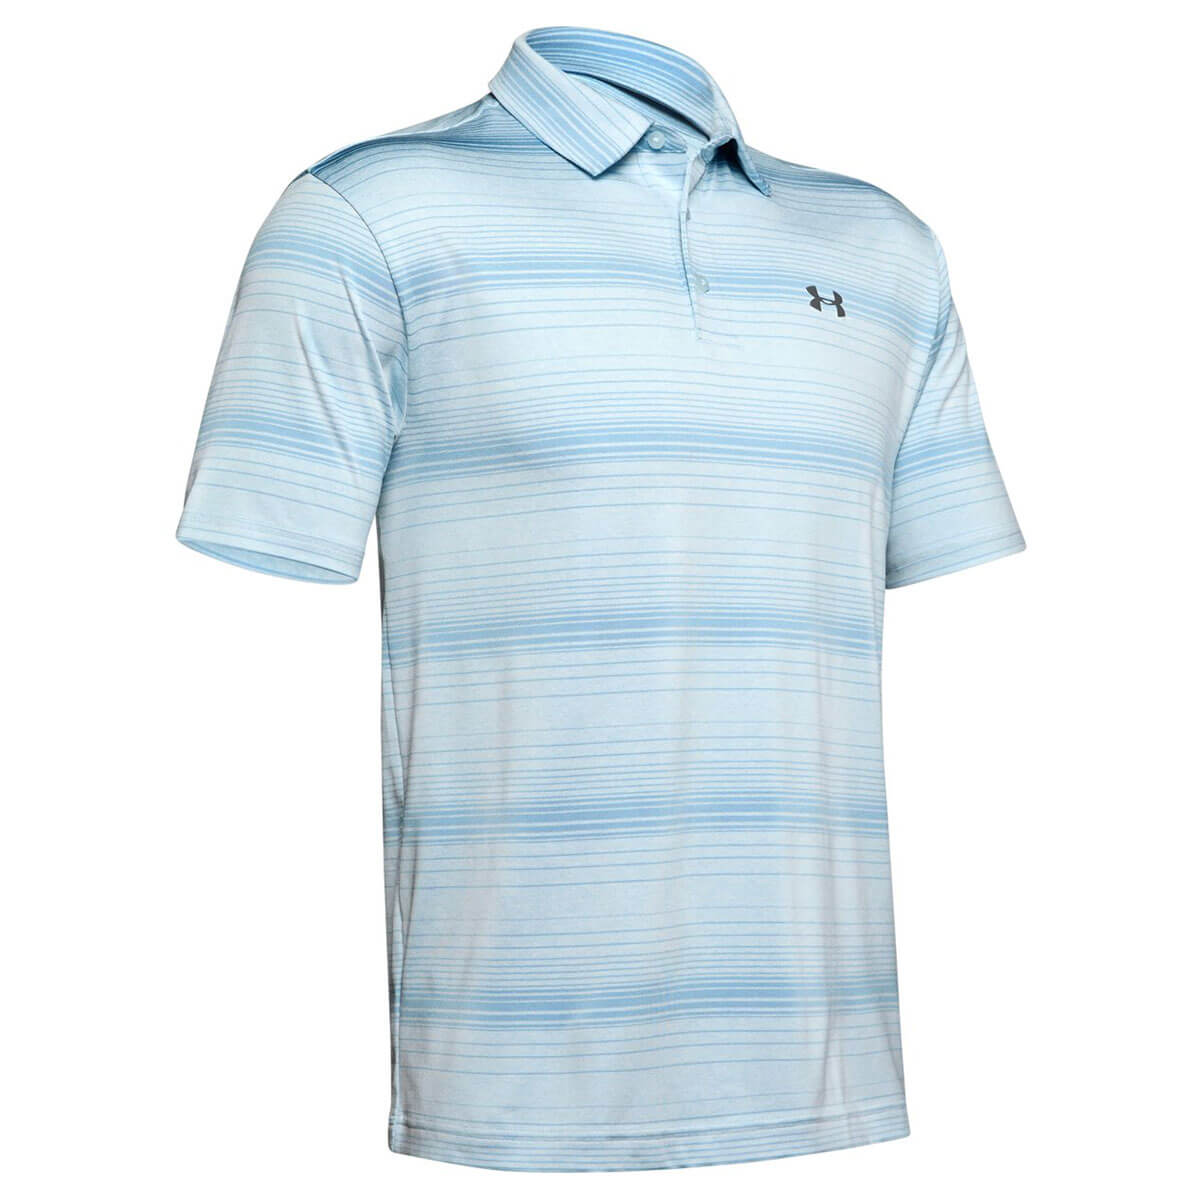 Under-Armour-Mens-2019-Playoff-Polo-2-0-Breathable-Light-Stretch-Polo-Shirt thumbnail 66